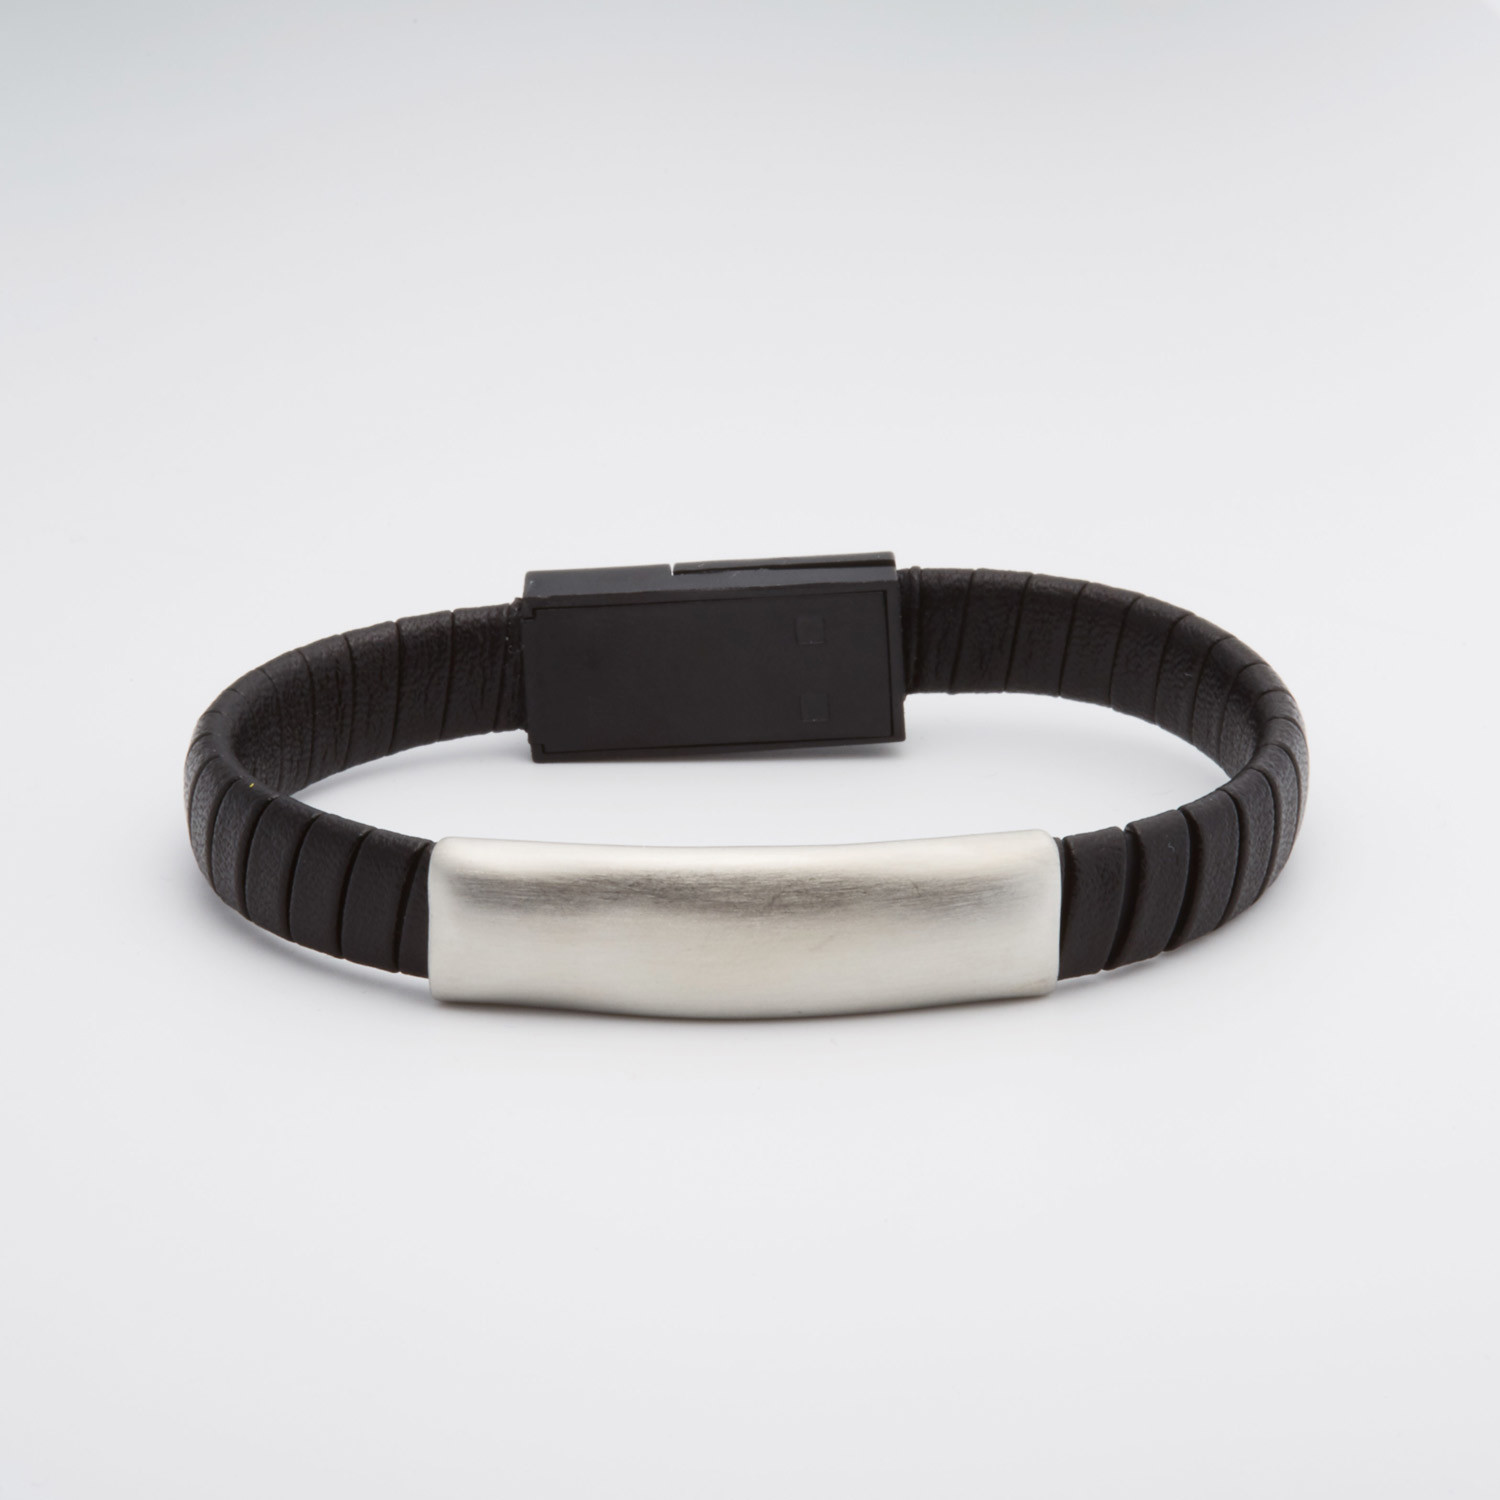 Braided Leather Stainless Steel Usb